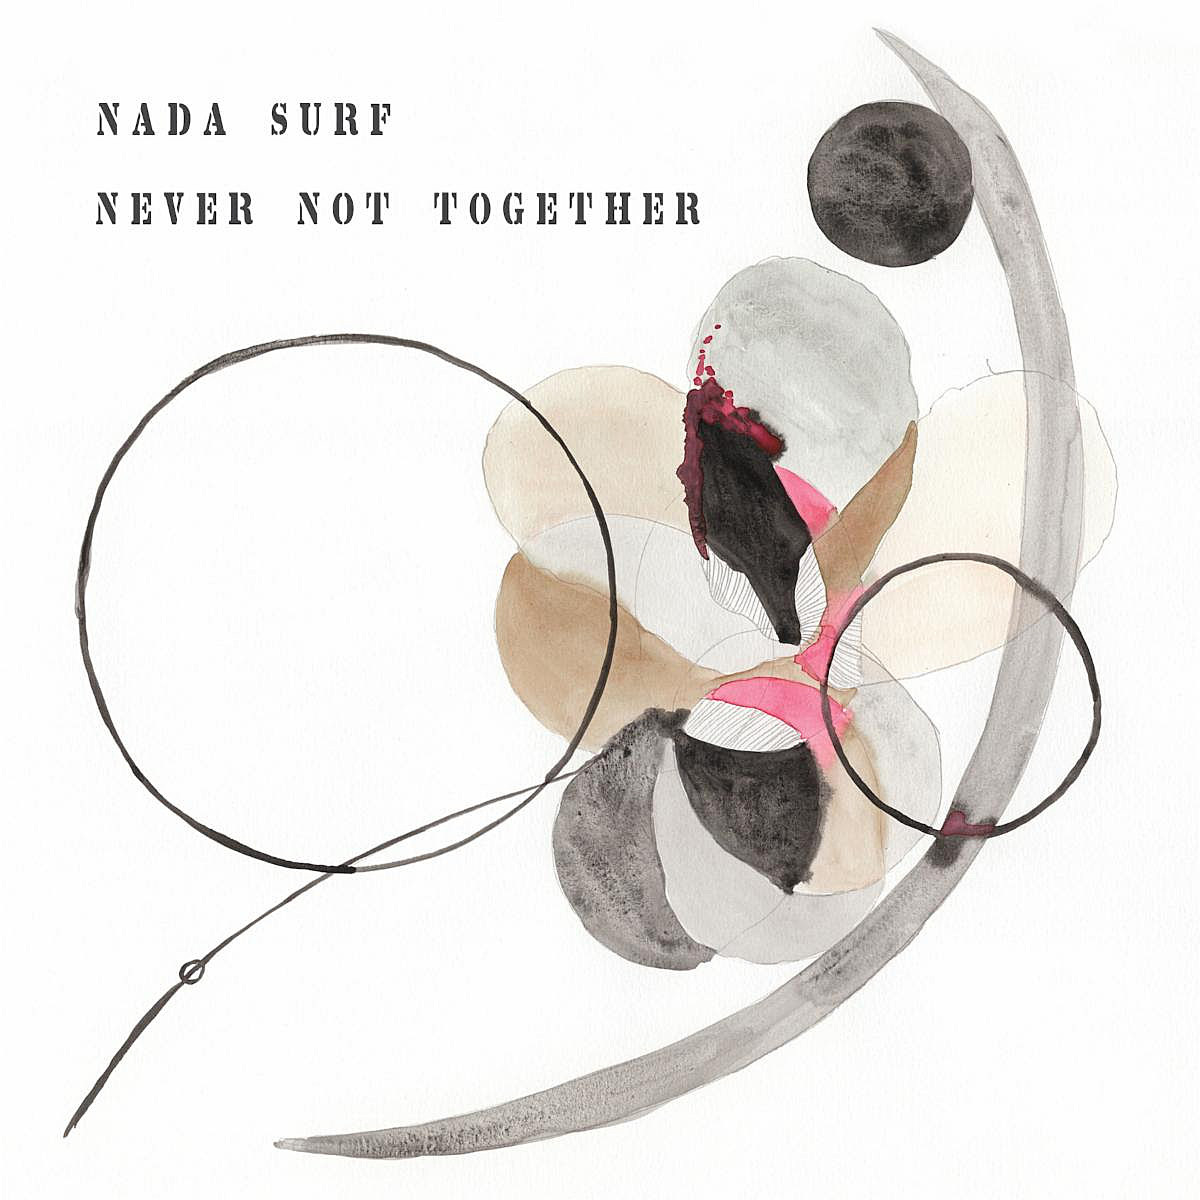 http://www.brooklynvegan.com/files/2019/11/nada-surf-never-not-together.jpg